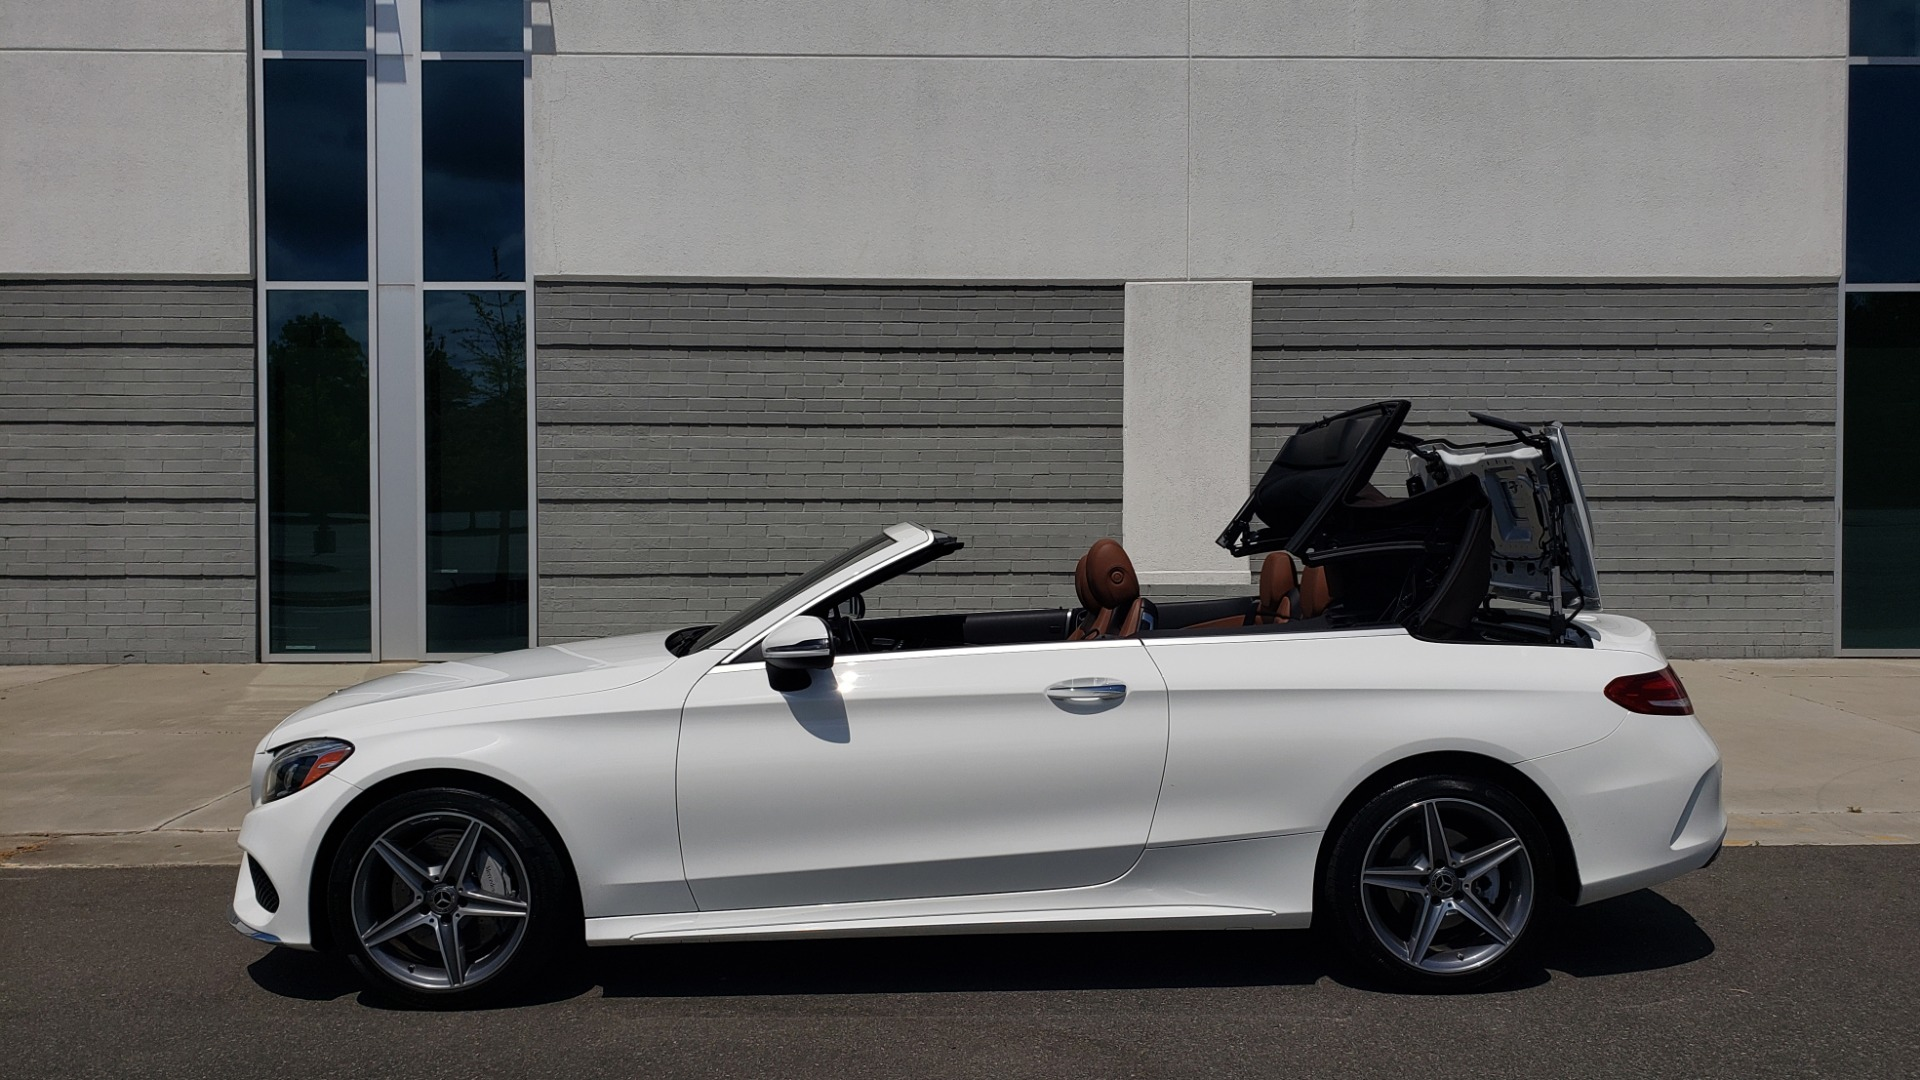 Used 2018 Mercedes-Benz C-CLASS C 300 CABRIOLET PREMIUM / AWD / BURMESTER SND / APPLE / REARVIEW for sale $44,995 at Formula Imports in Charlotte NC 28227 9